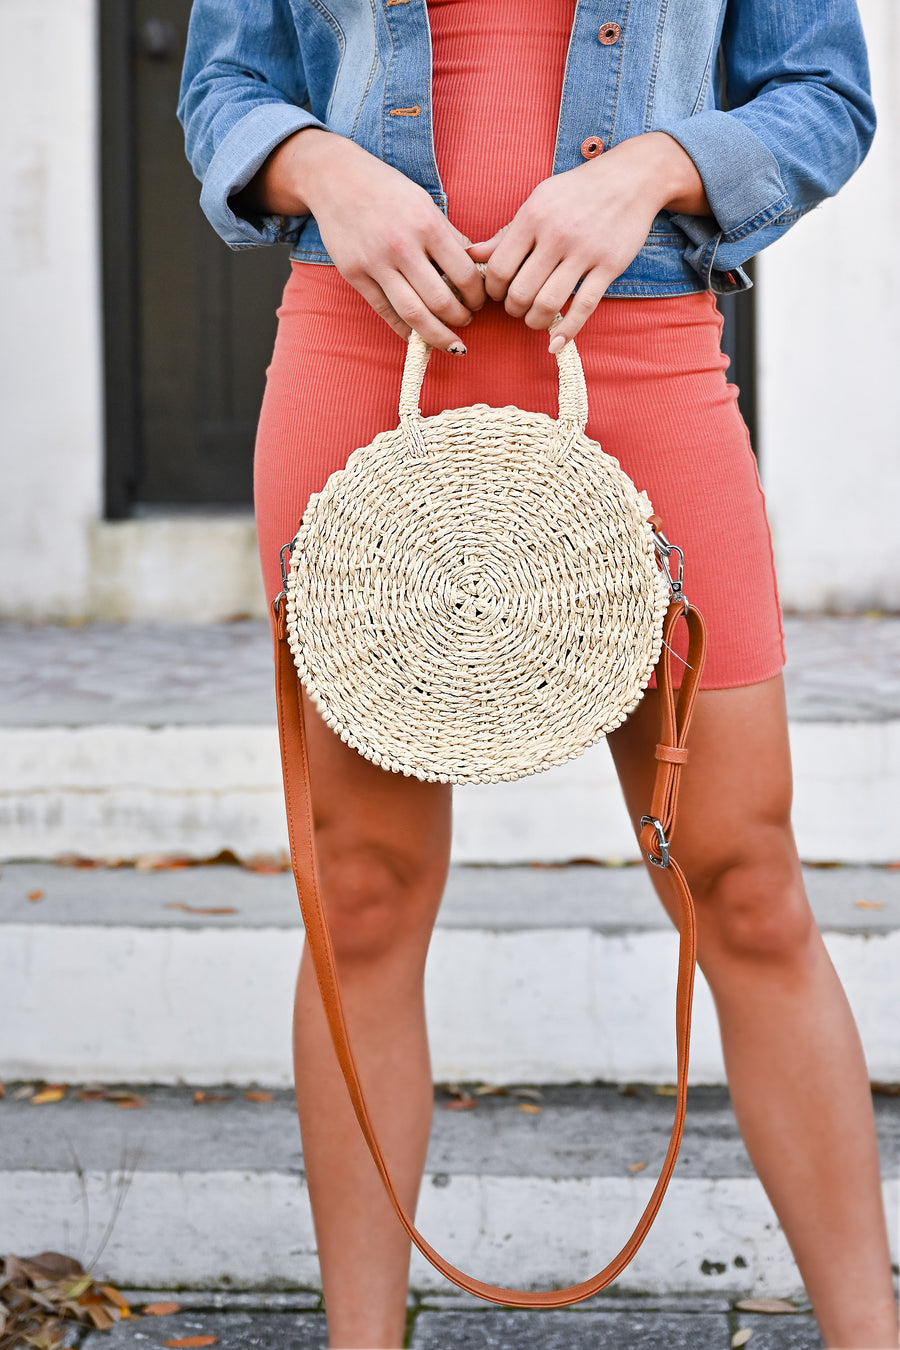 Seaside Round Straw Bag - Natural womens casual round straw bag with zipper closure closet candy side